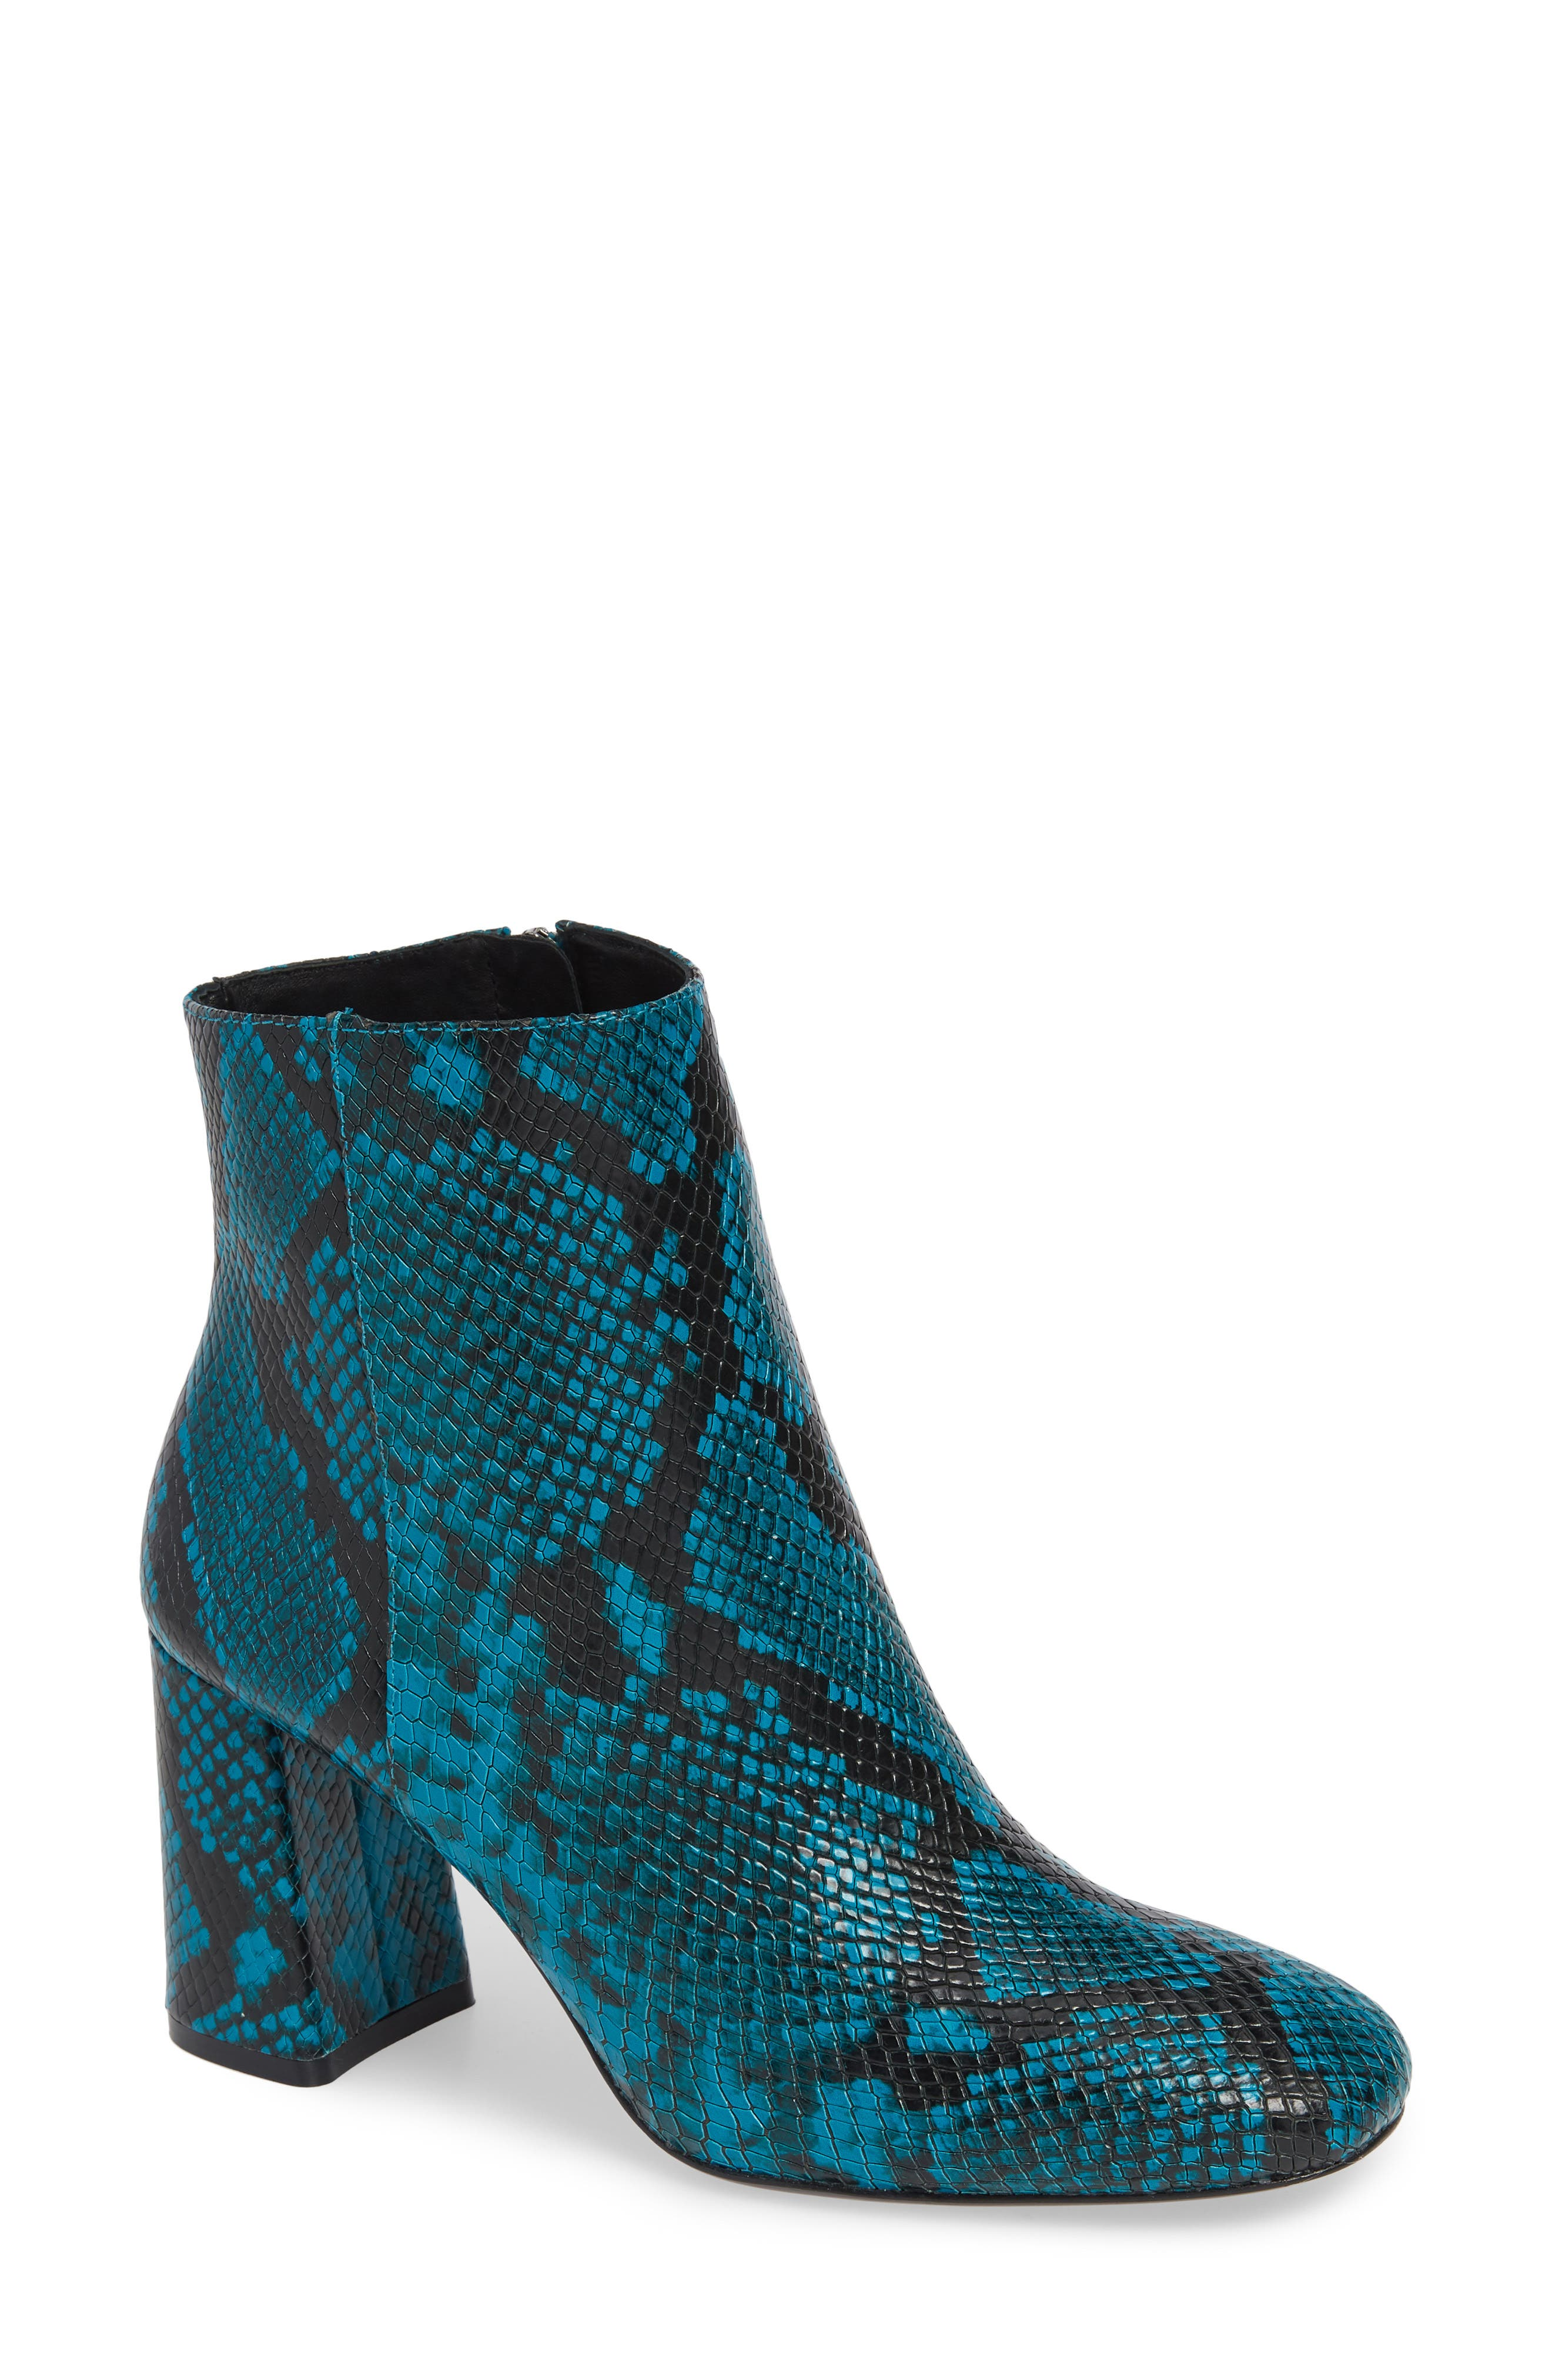 Dobrey Snake Embossed Booties,                             Main thumbnail 1, color,                             TEAL